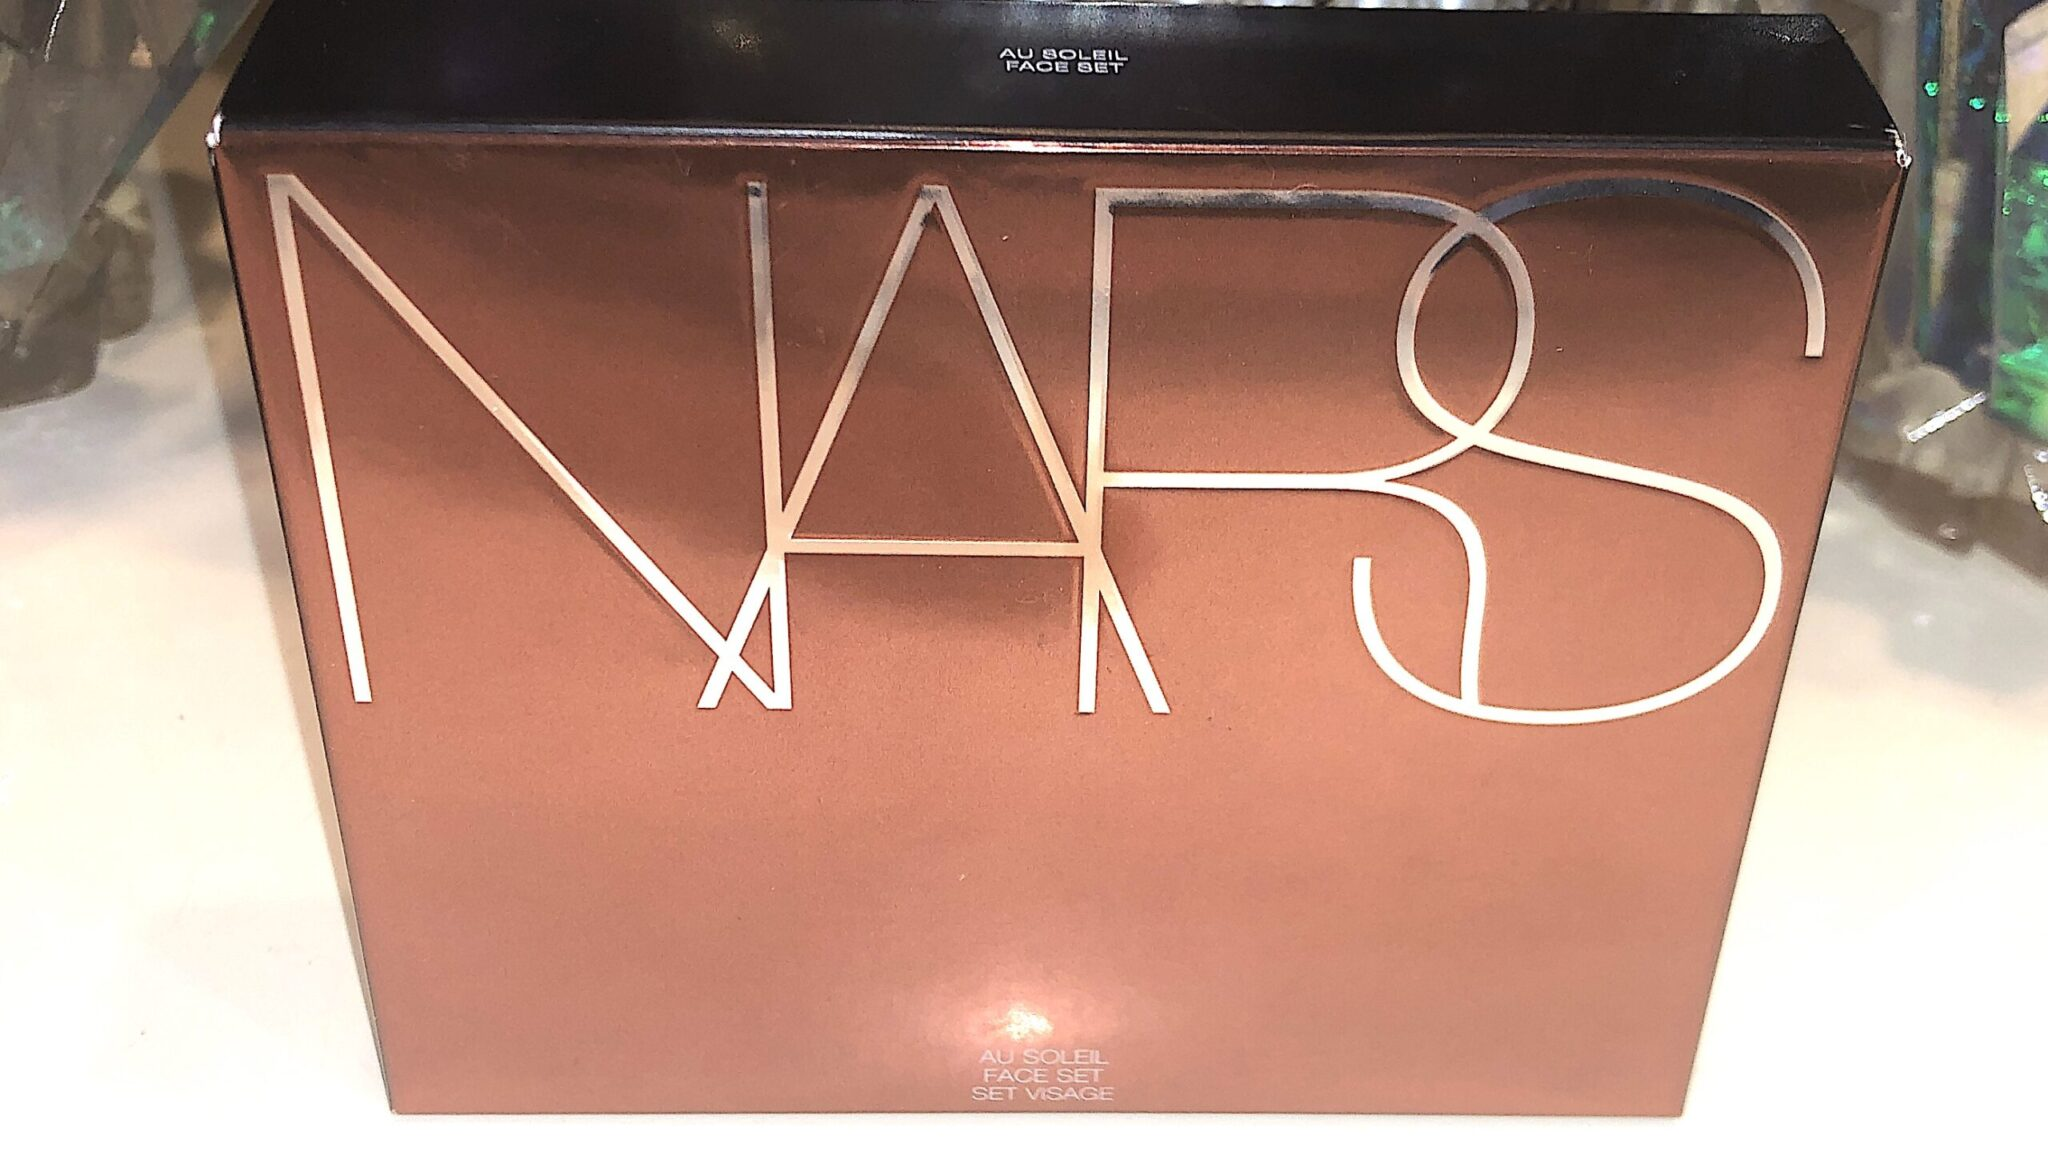 NARS AU SOLEIL FACE SET OUTERPACKAGING